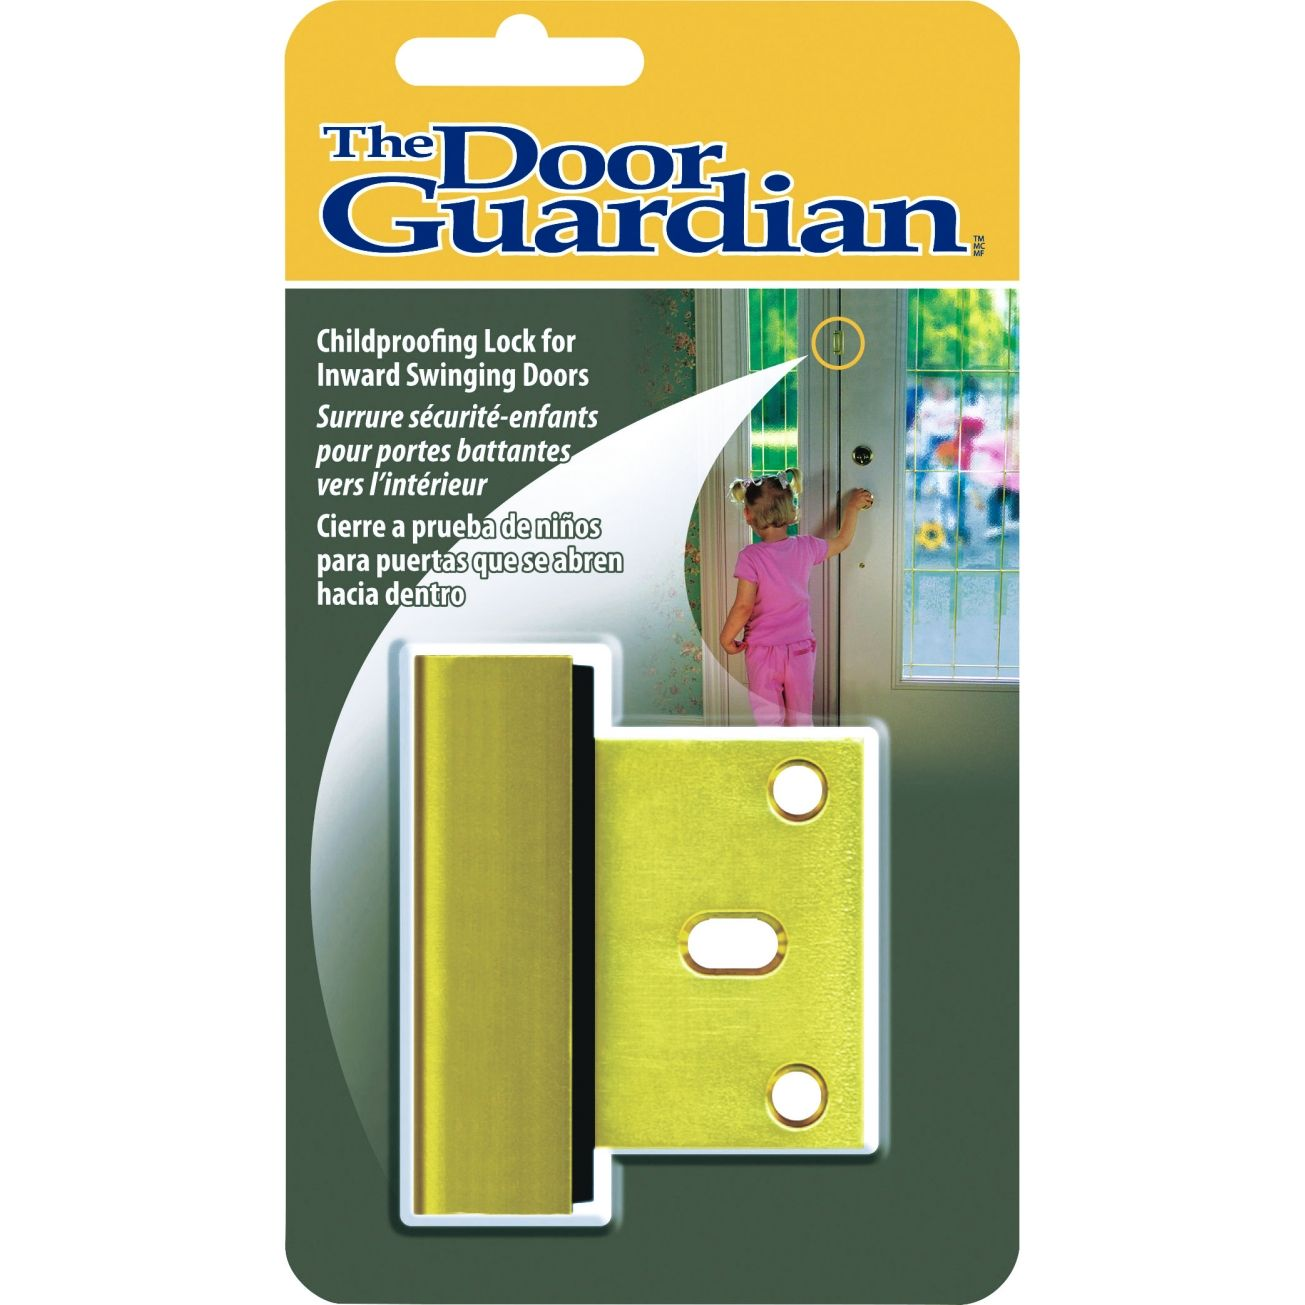 For French Doors as well! Two men attempted to break into